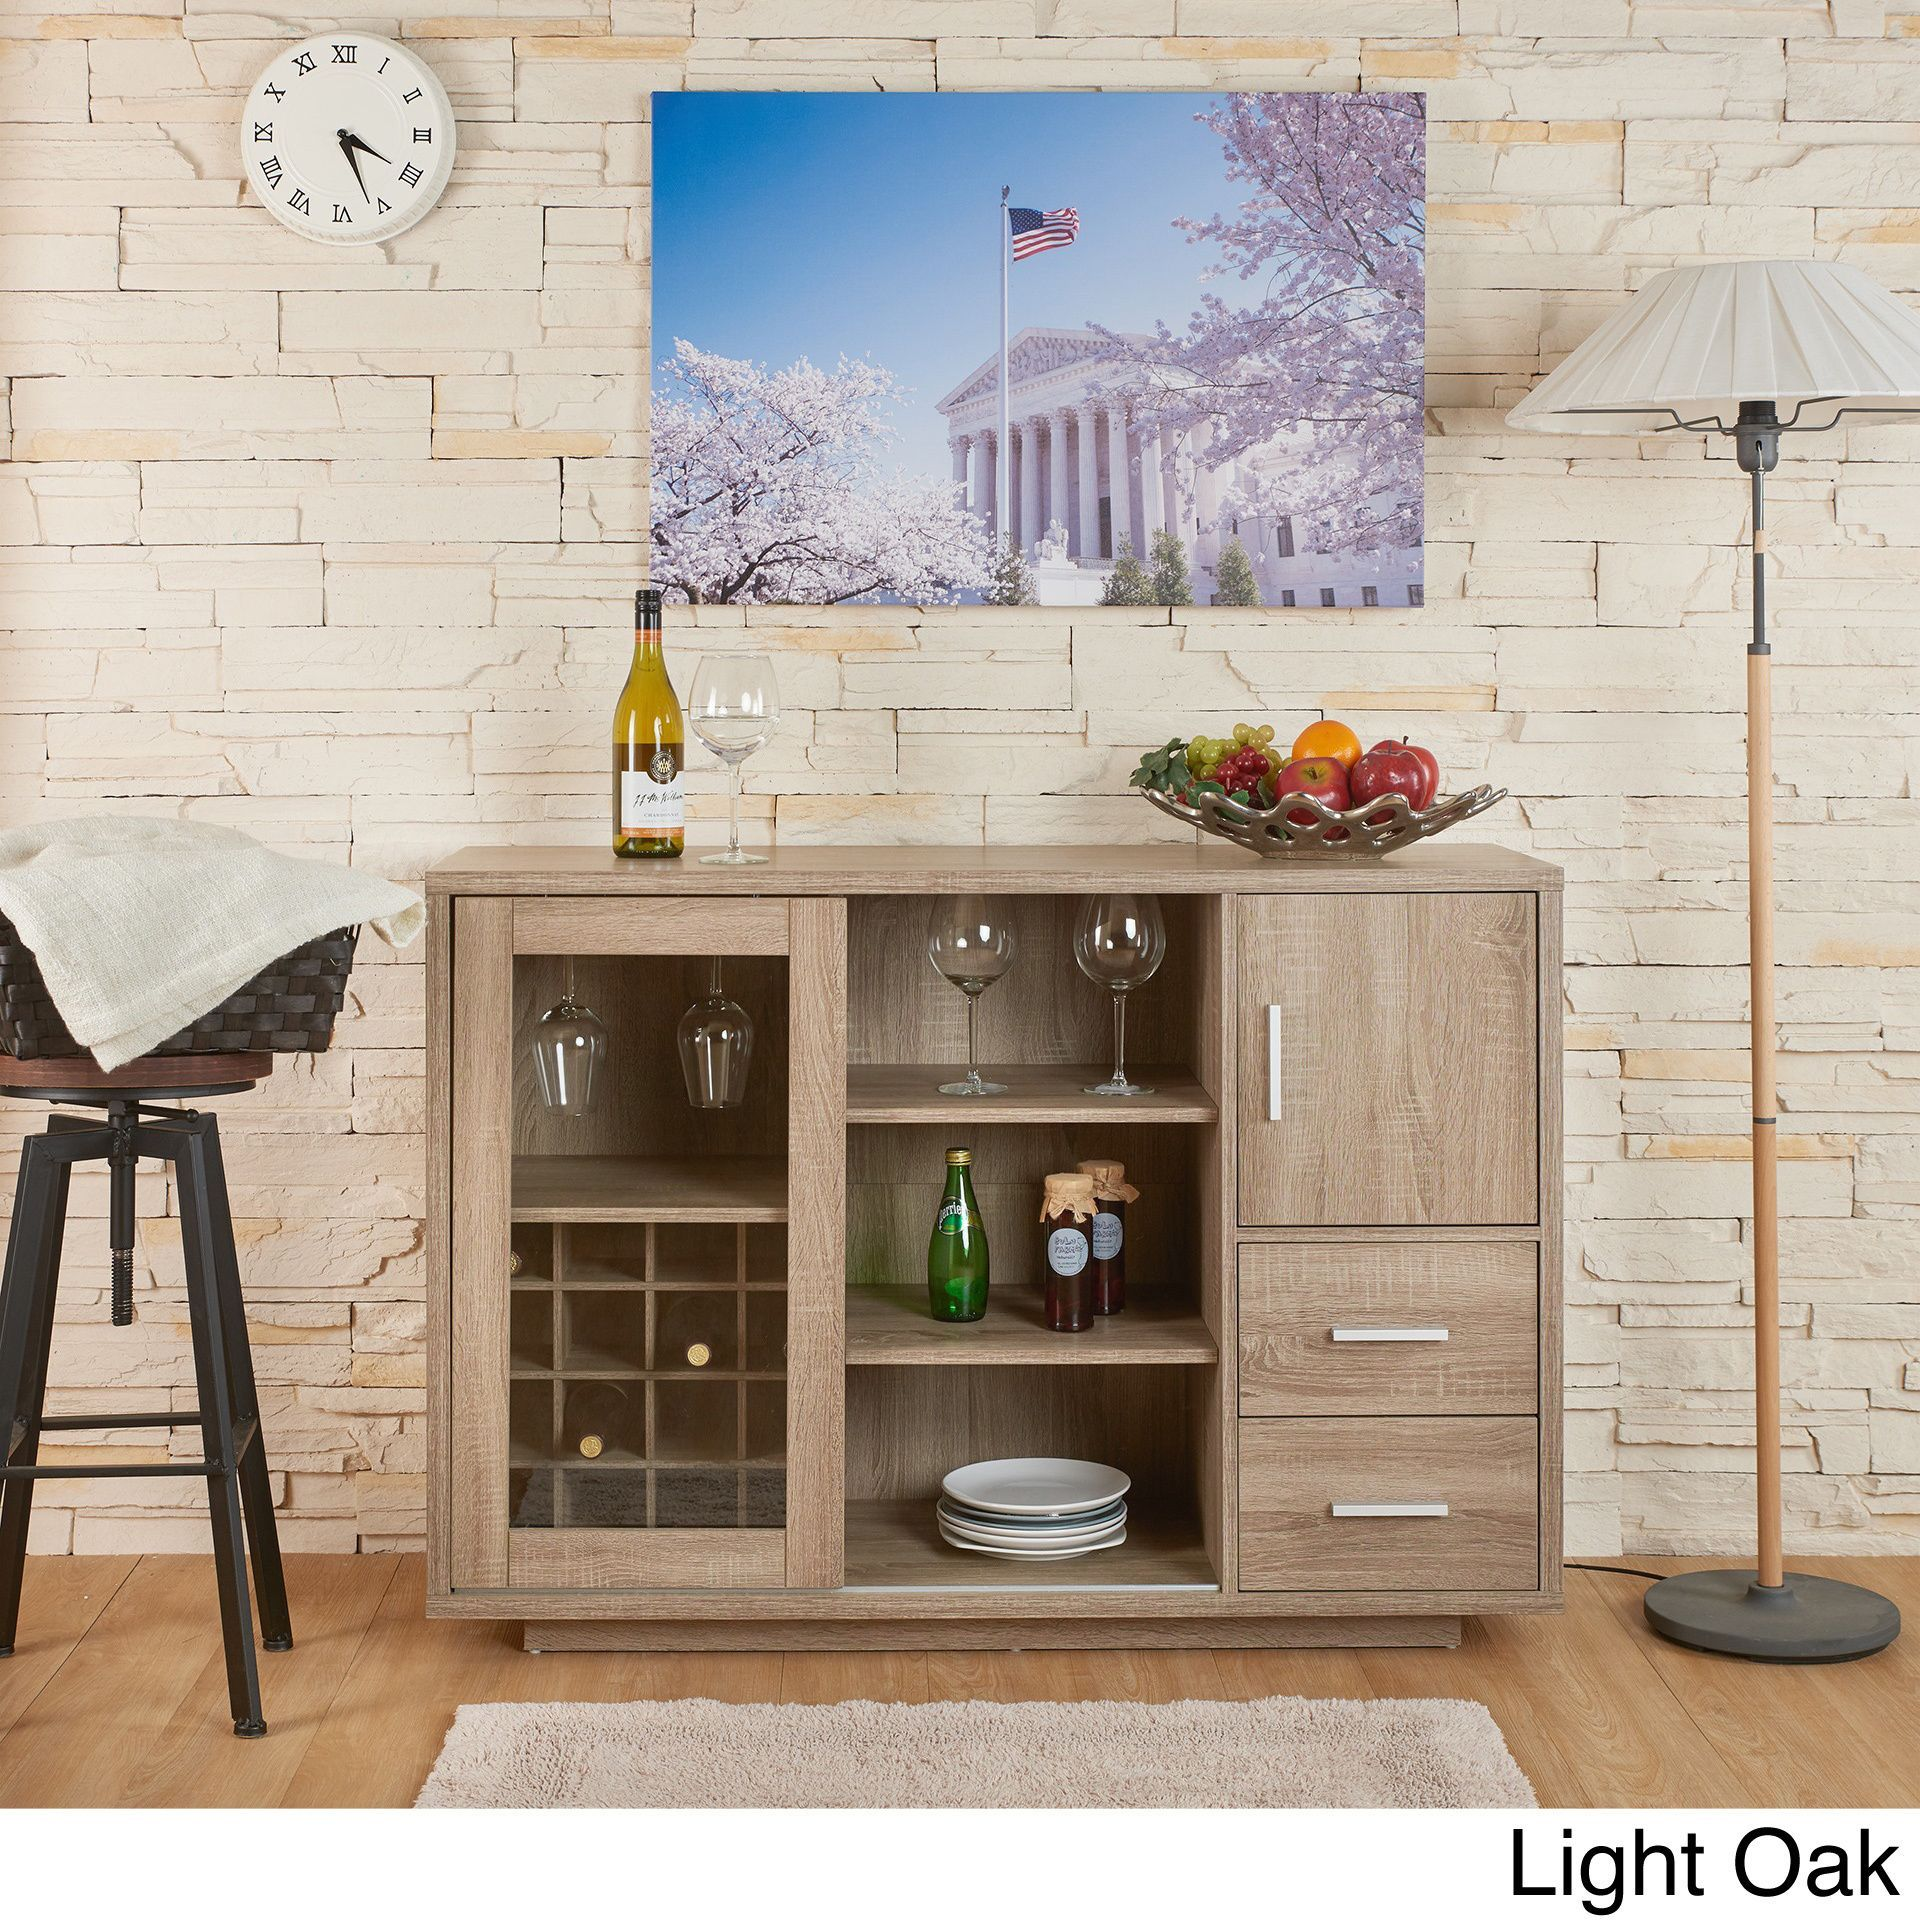 Storage And Design Come Hand In Hand With This Spacious And Simple Dining Room Bar Furniture Inspiration